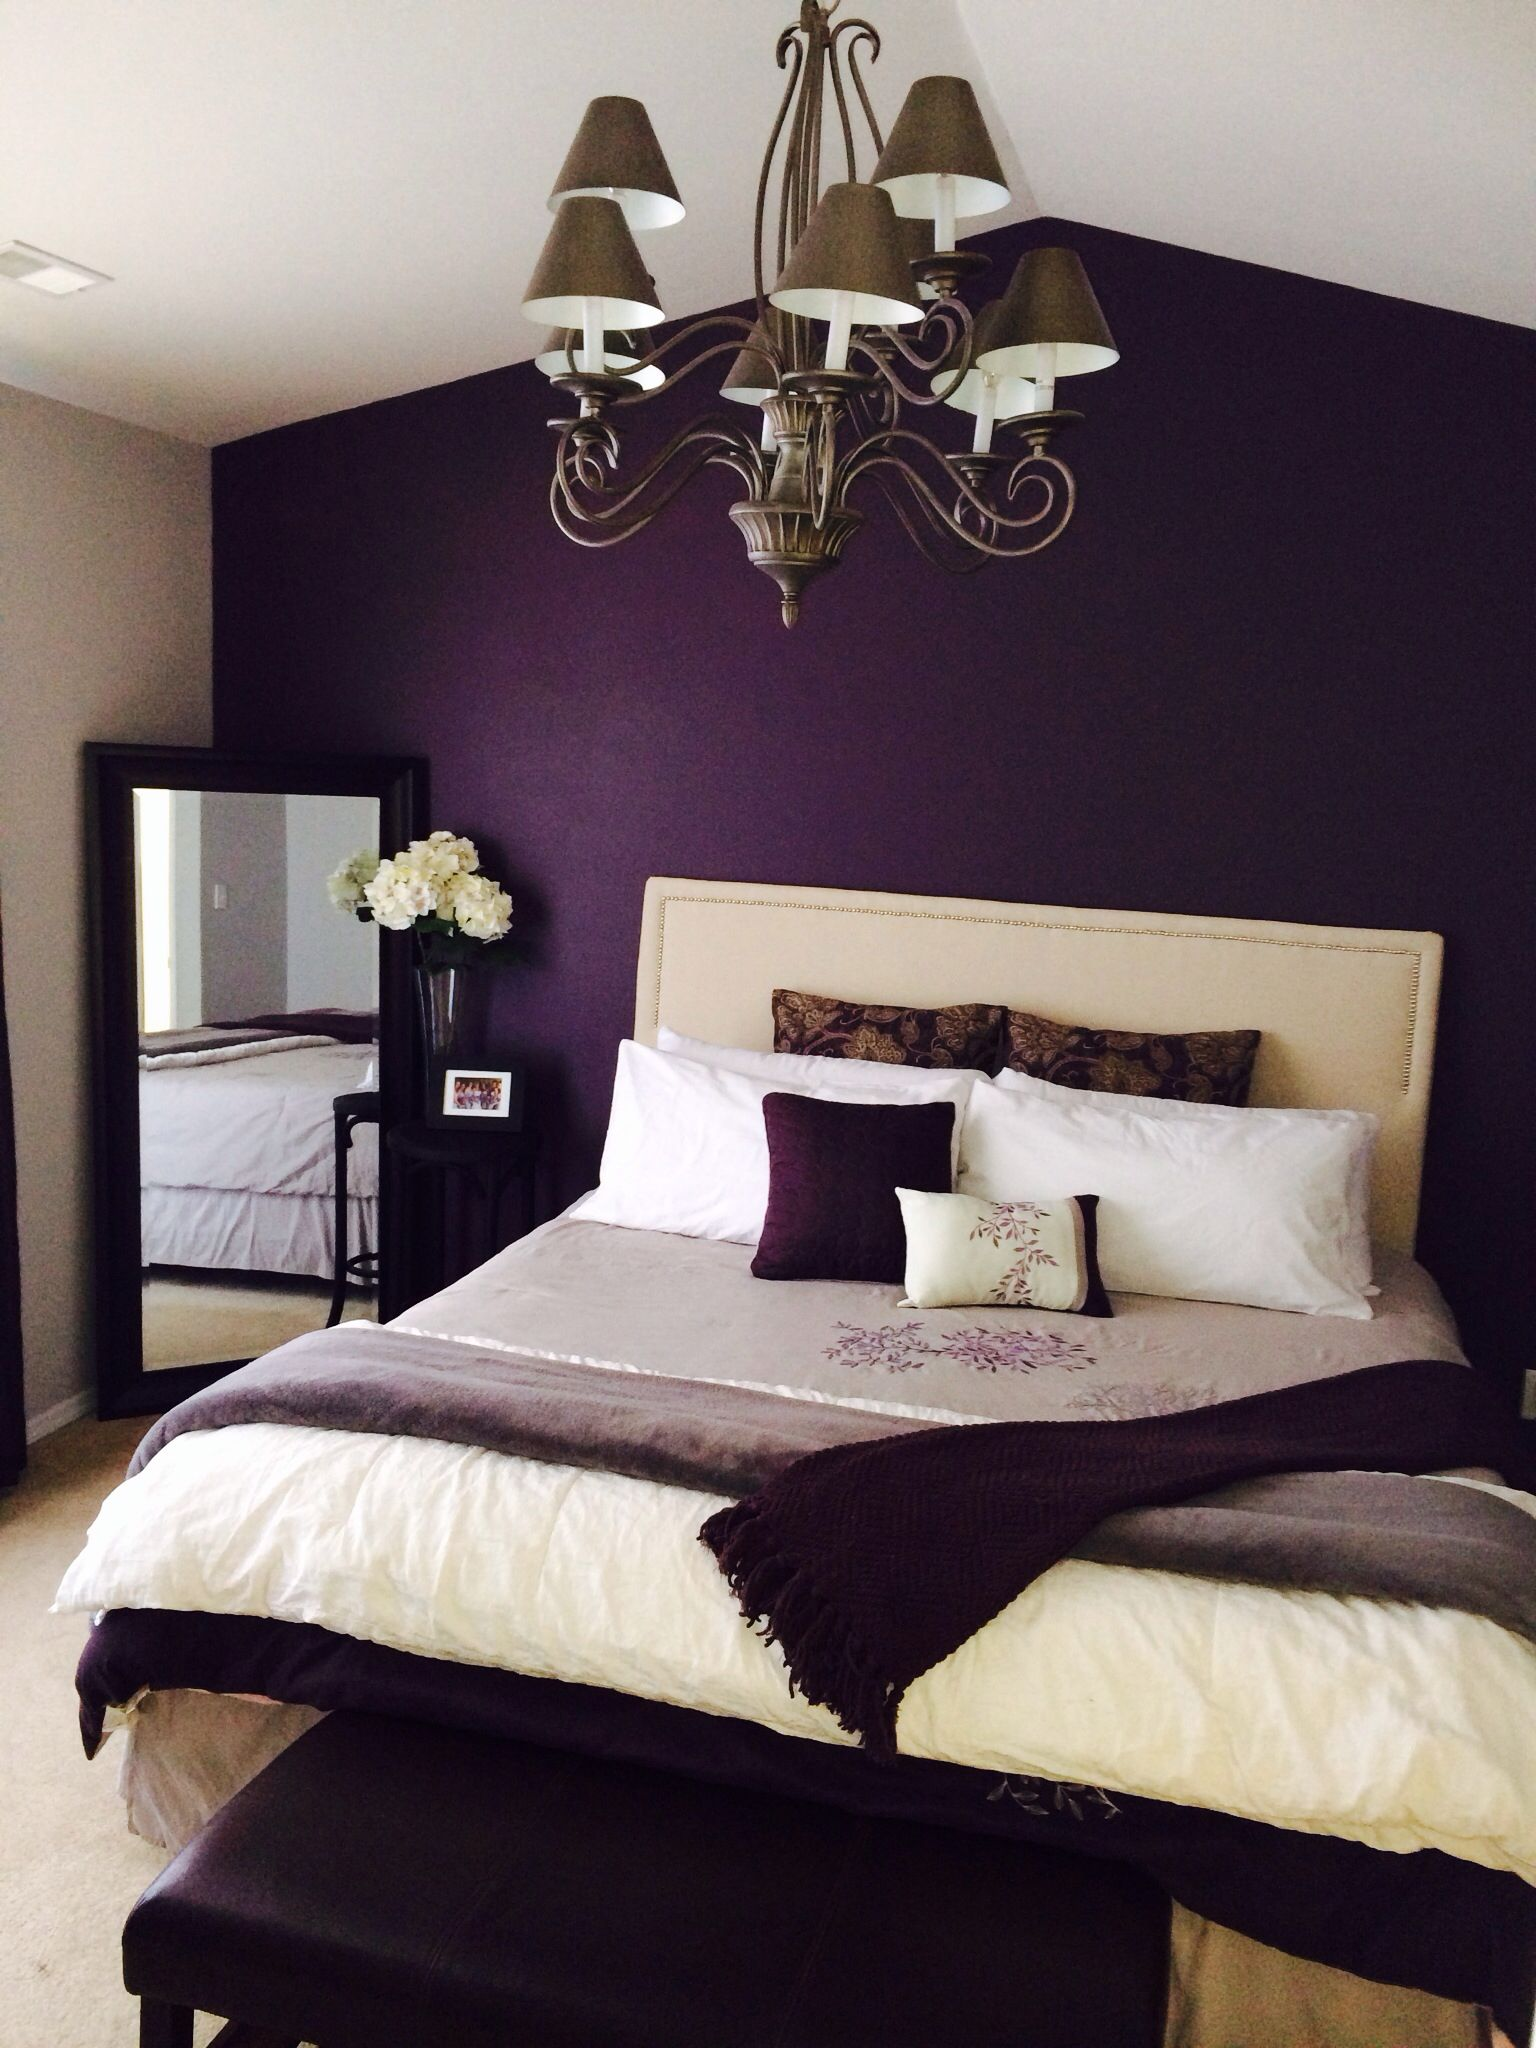 Bedroom designs ideas black and white - Latest 30 Romantic Bedroom Ideas To Make The Love Happen